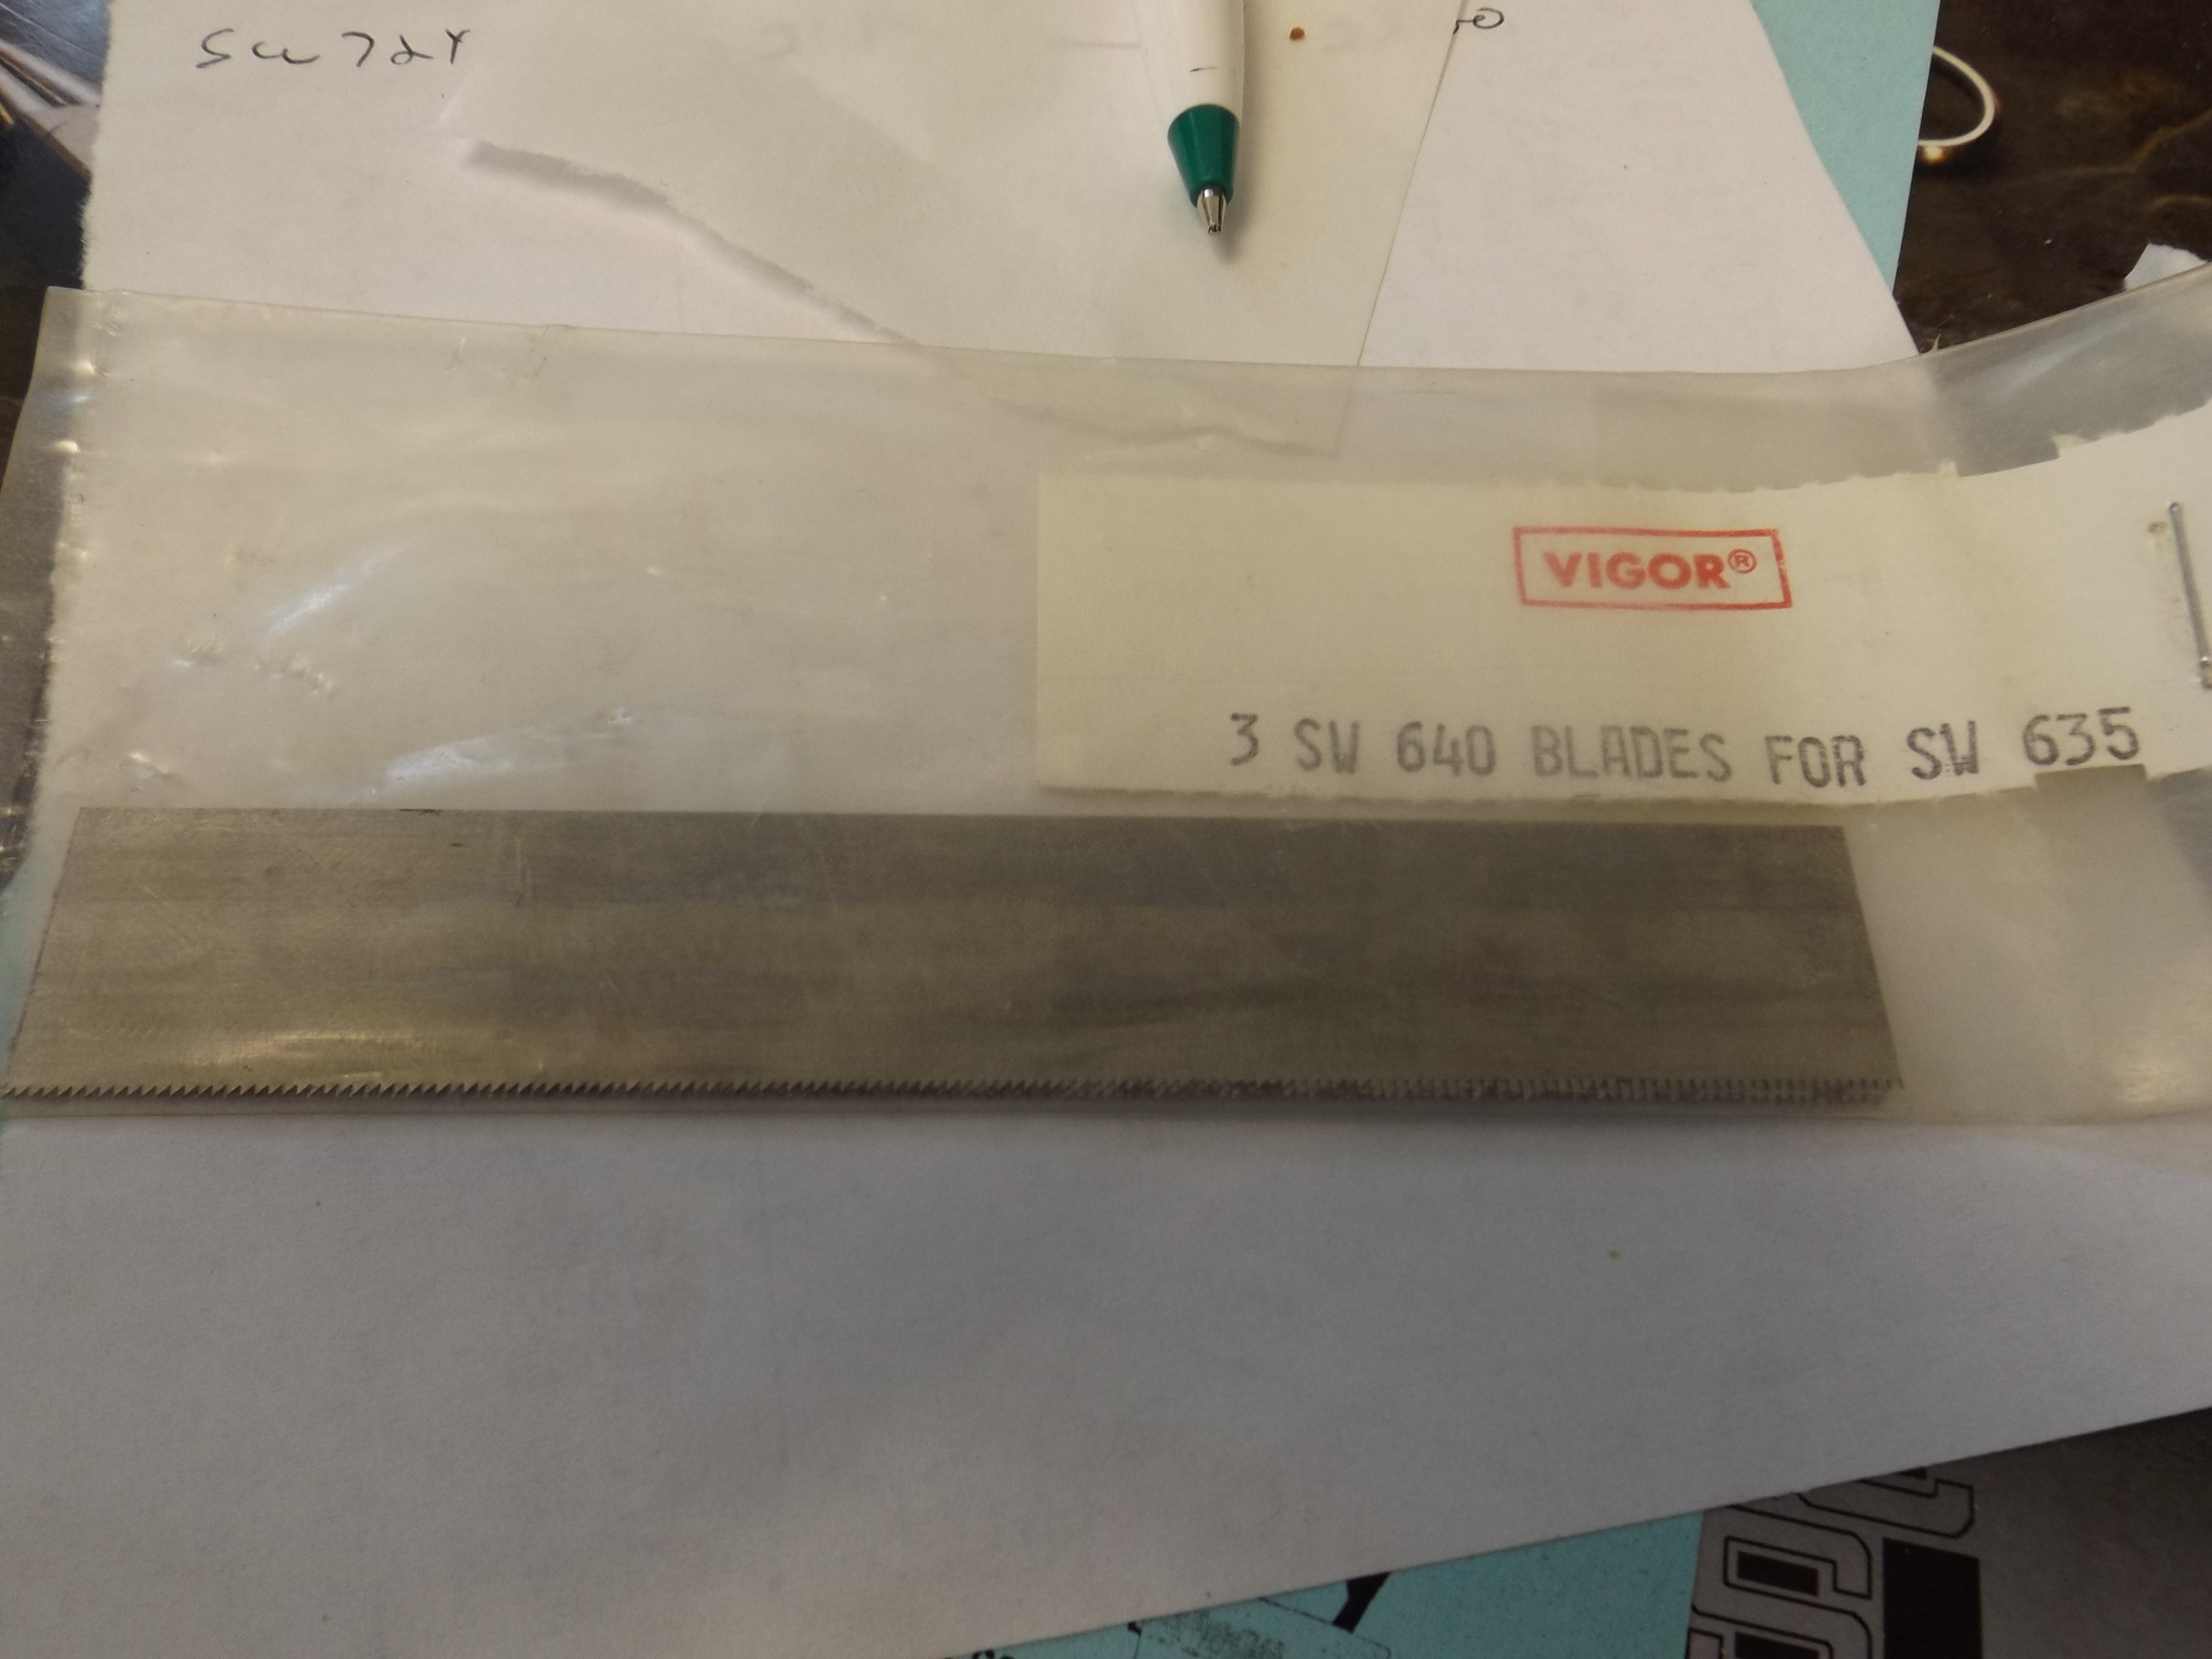 SW640 Pkg of 3 Blades to fit SW635 Back Saw--Discontinued item- two sets left!